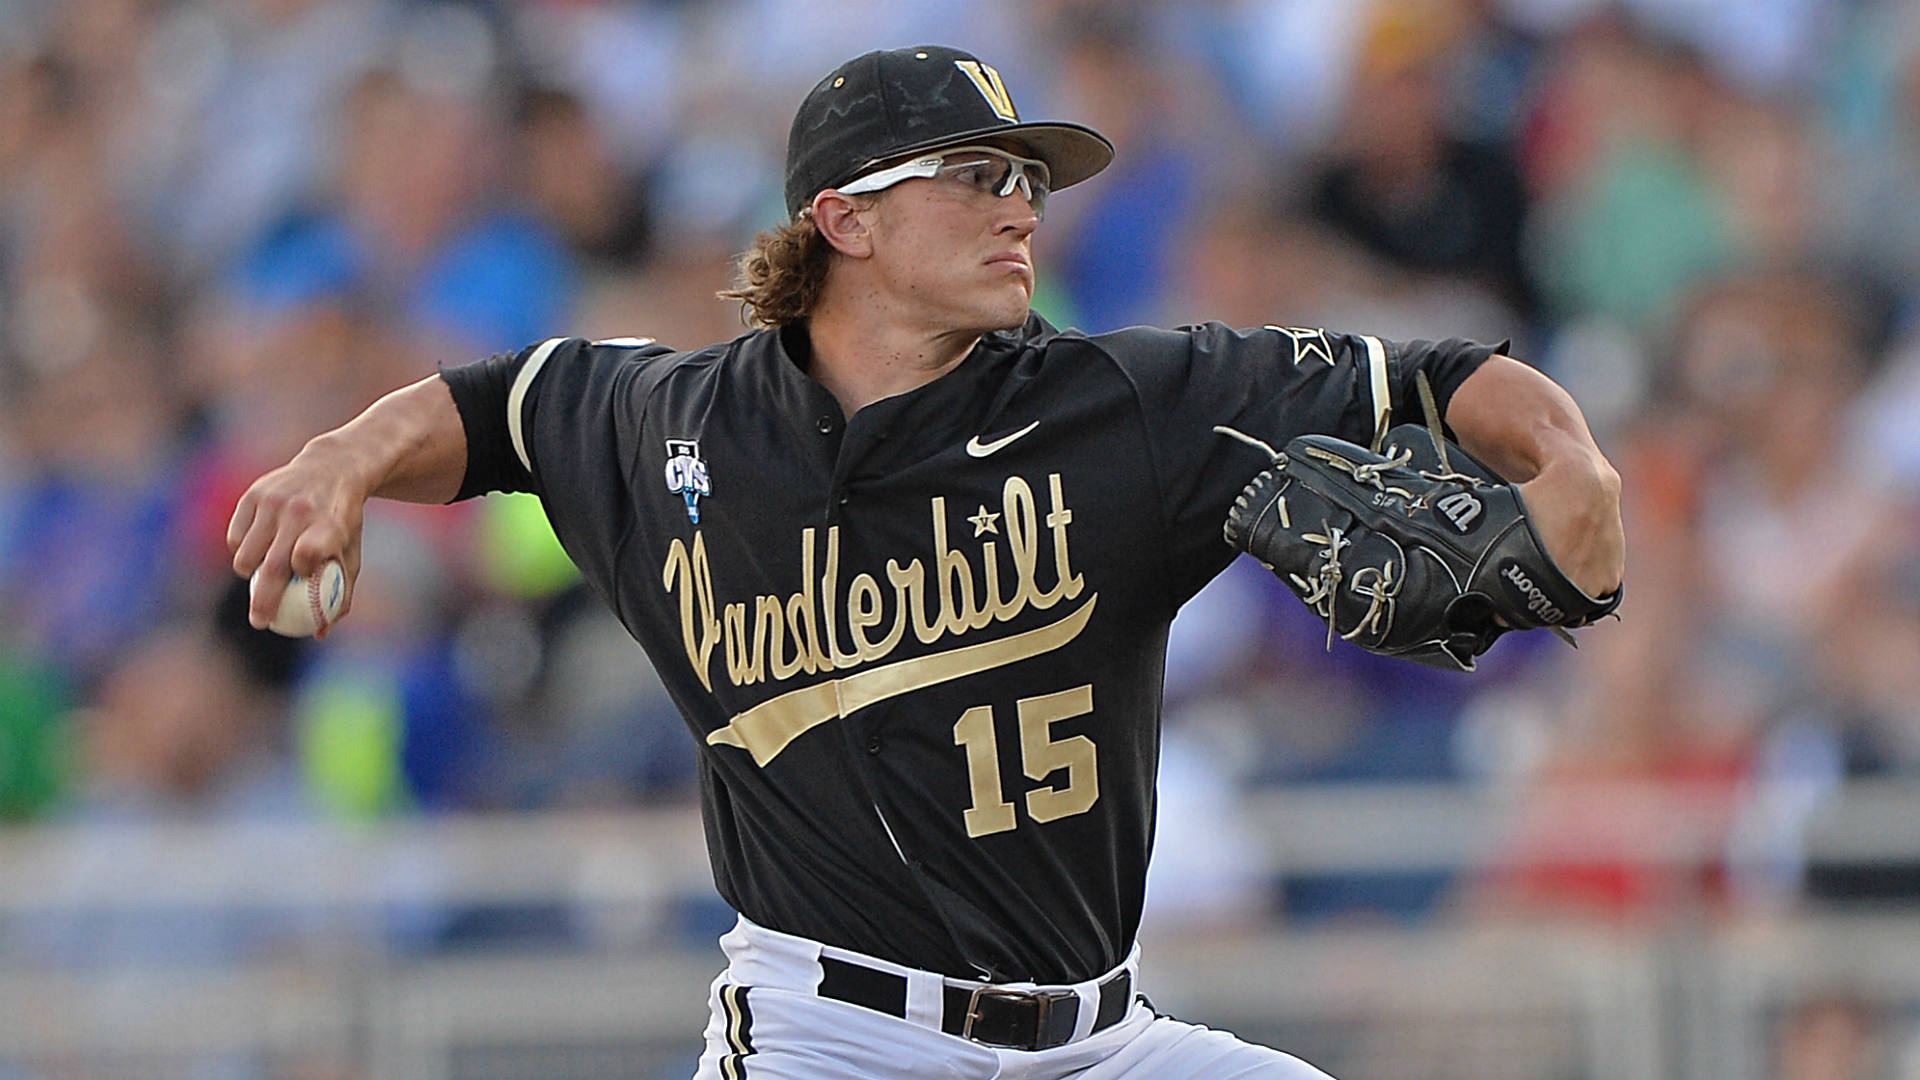 NCAA baseball tournament 2015: 64 teams, 64 need-to-know nuggets